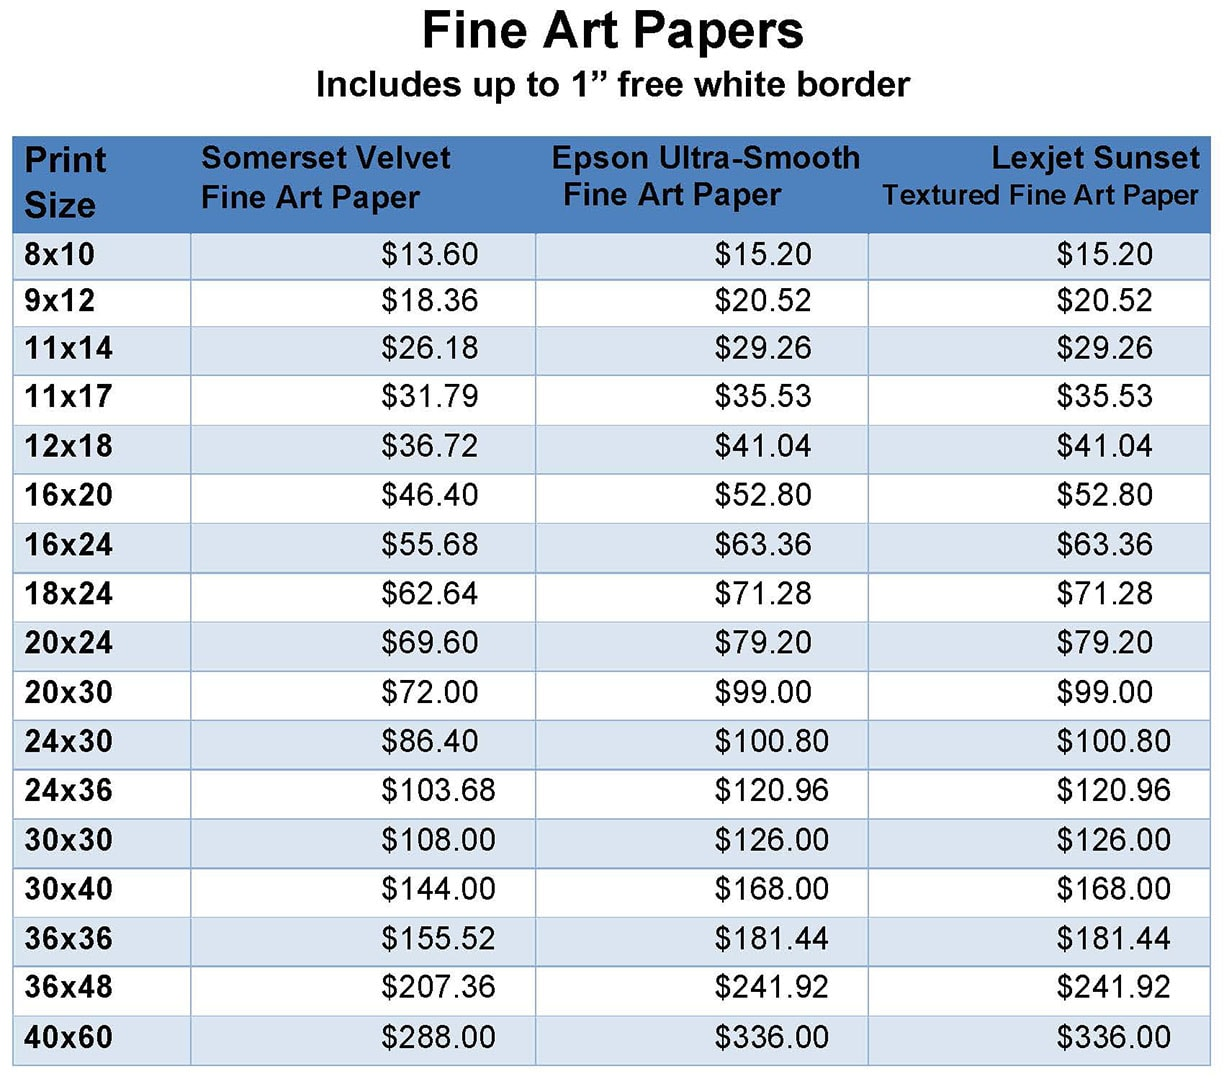 FineArtPriceChart_2020